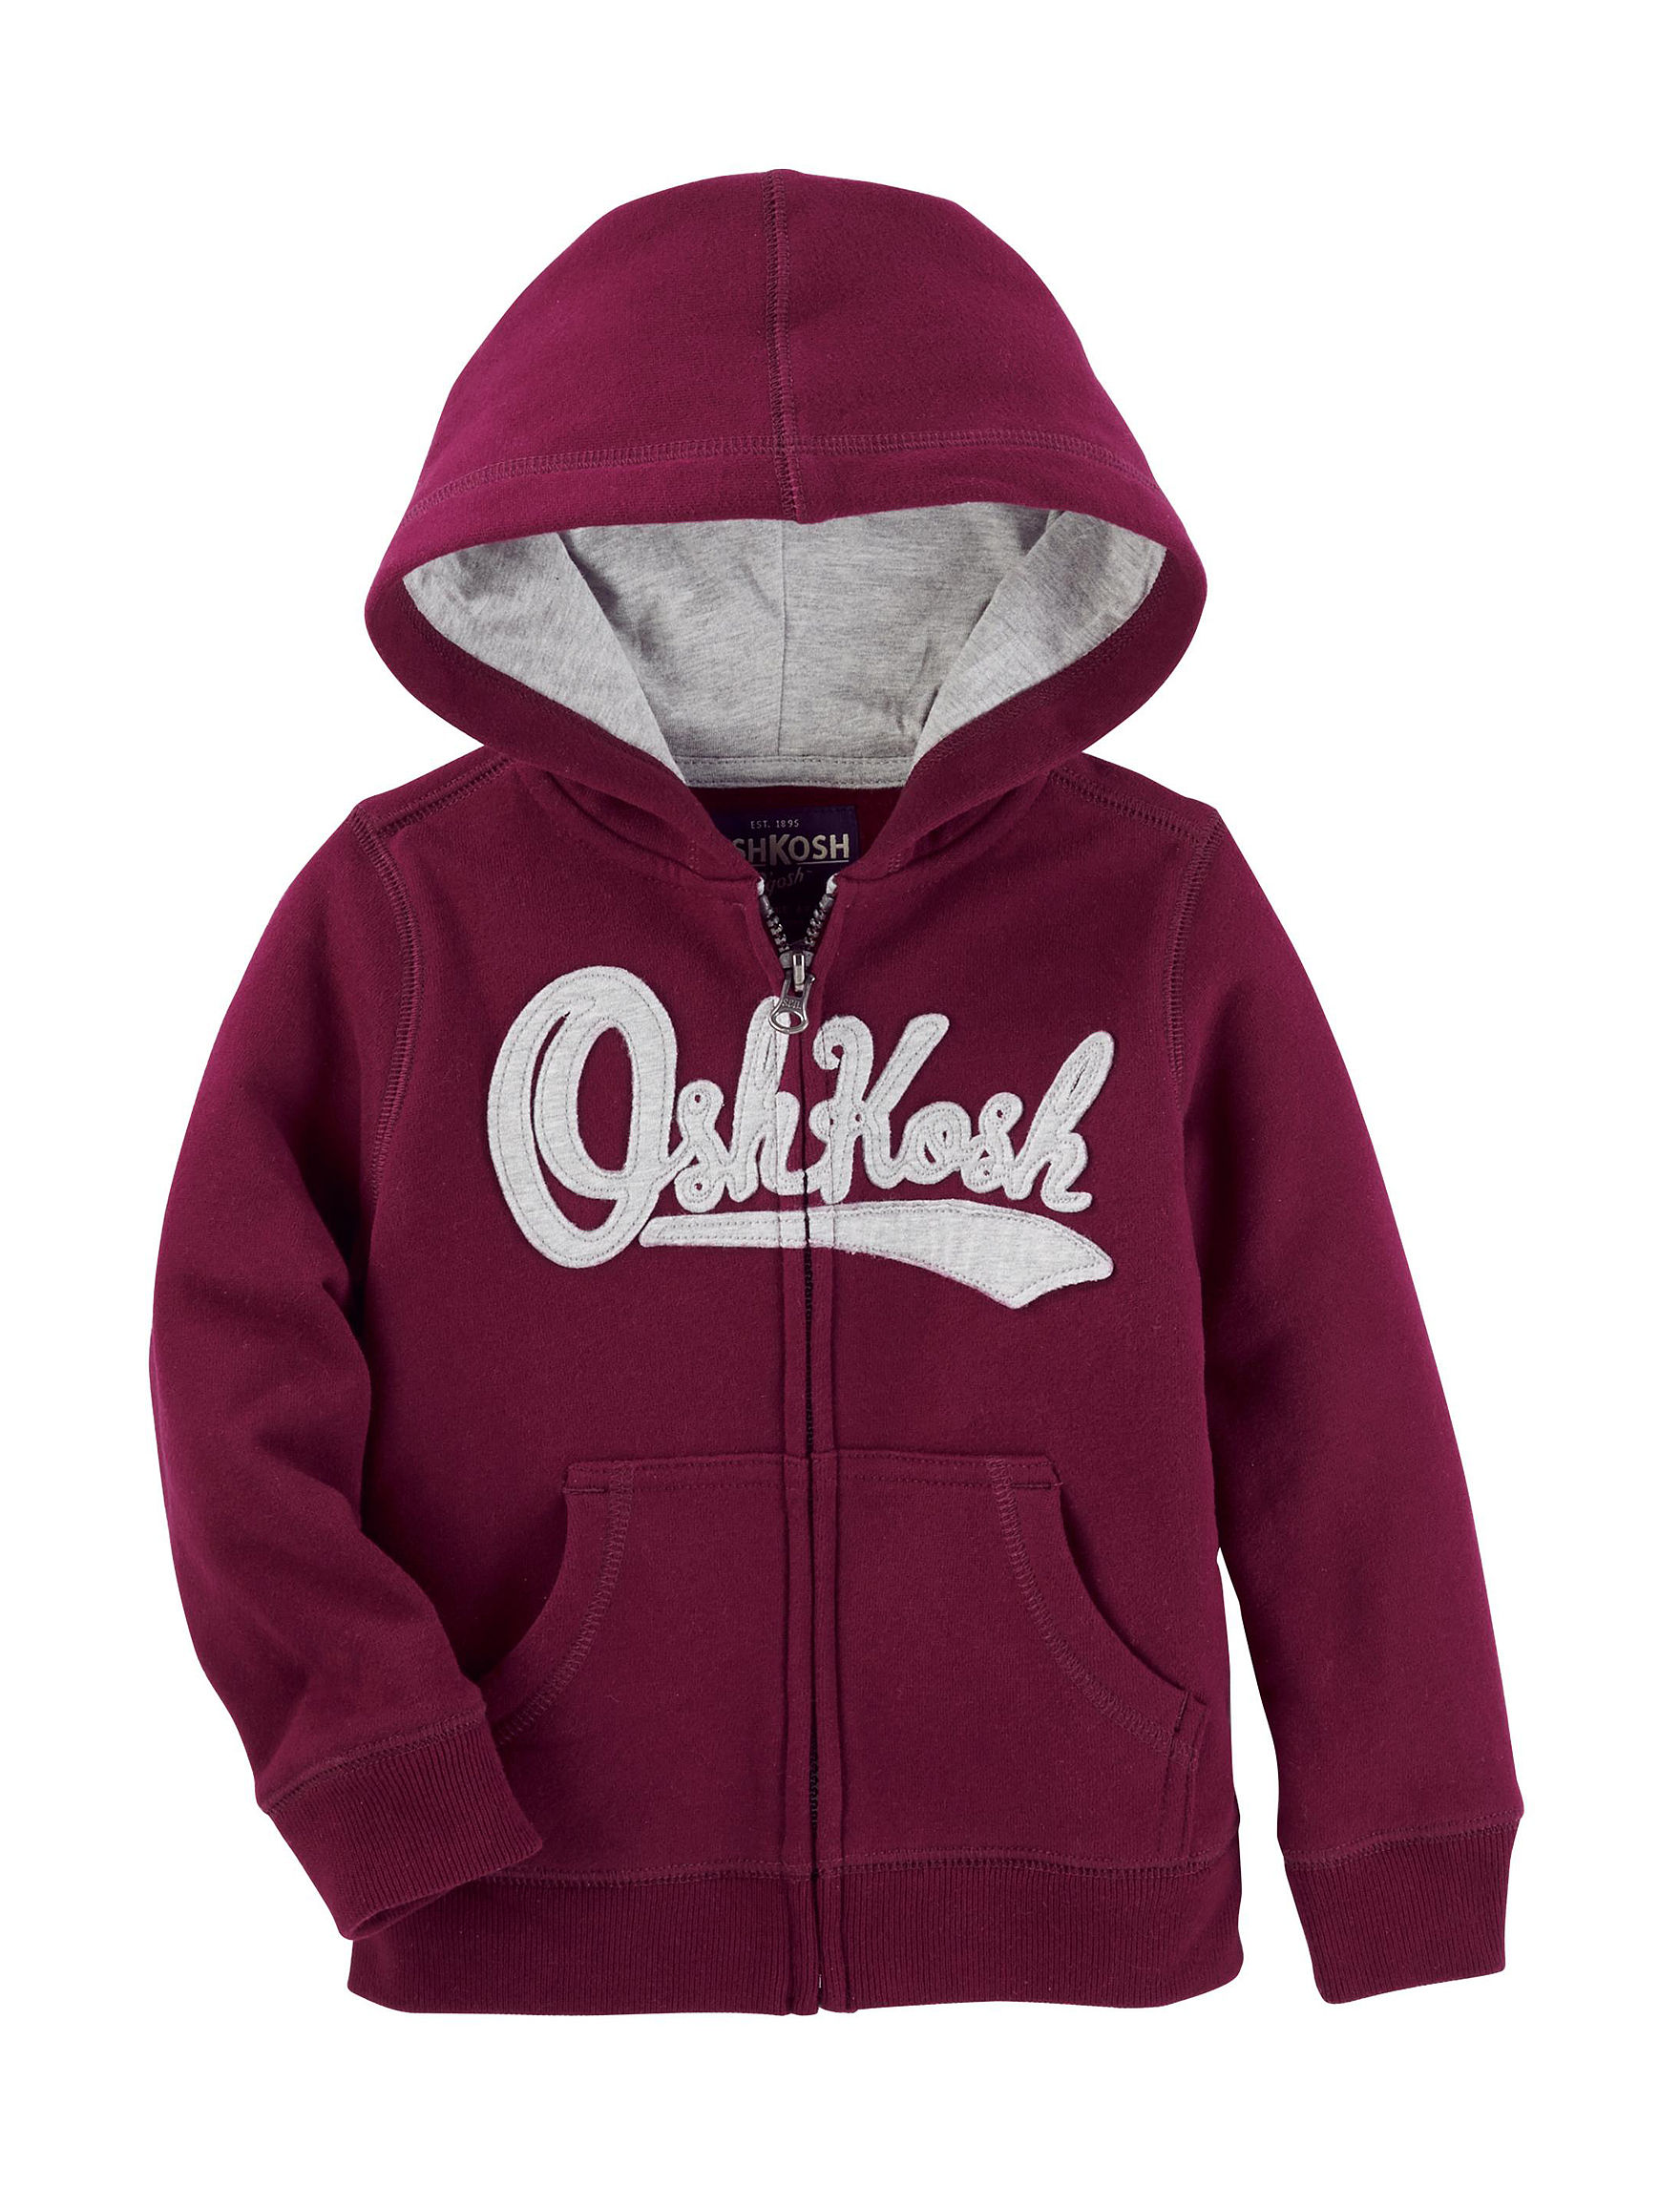 Oshkosh B'Gosh Red Fleece & Soft Shell Jackets